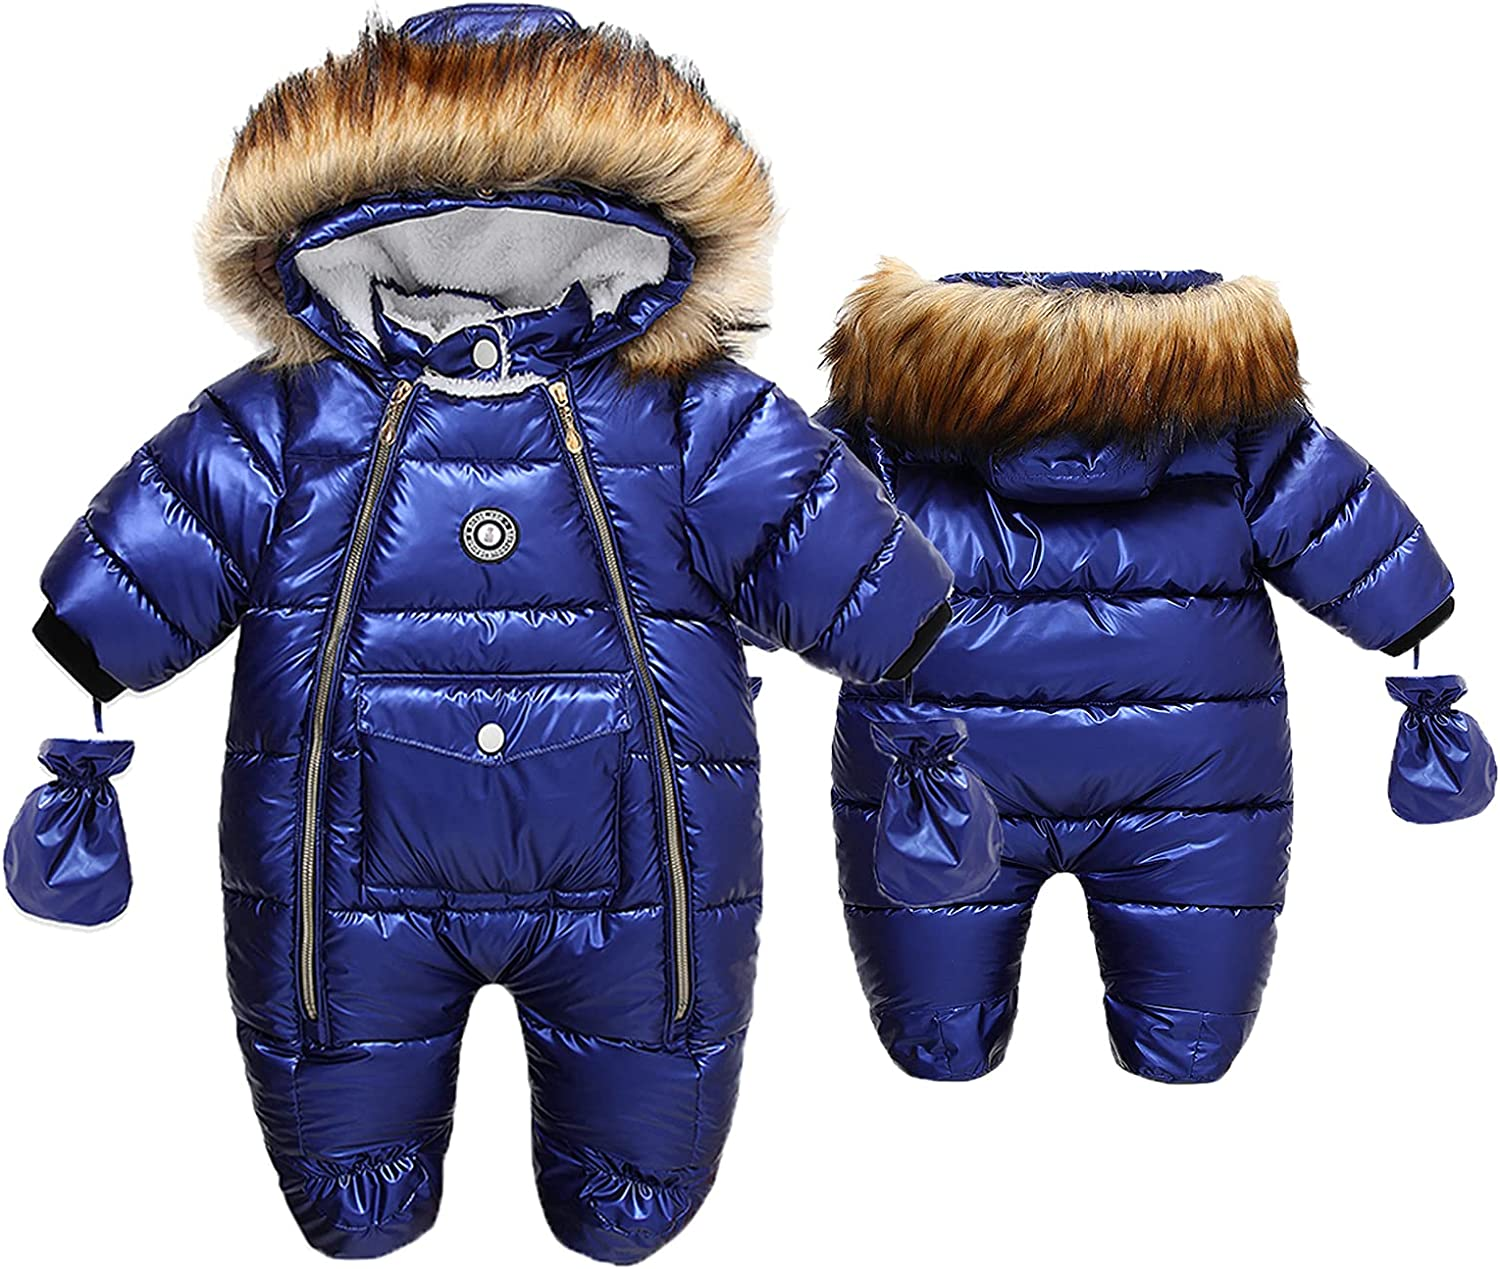 Baby Warm Winter Romper Fur Hooded Snowsuit Fleece Coat with Mittens and Shoes